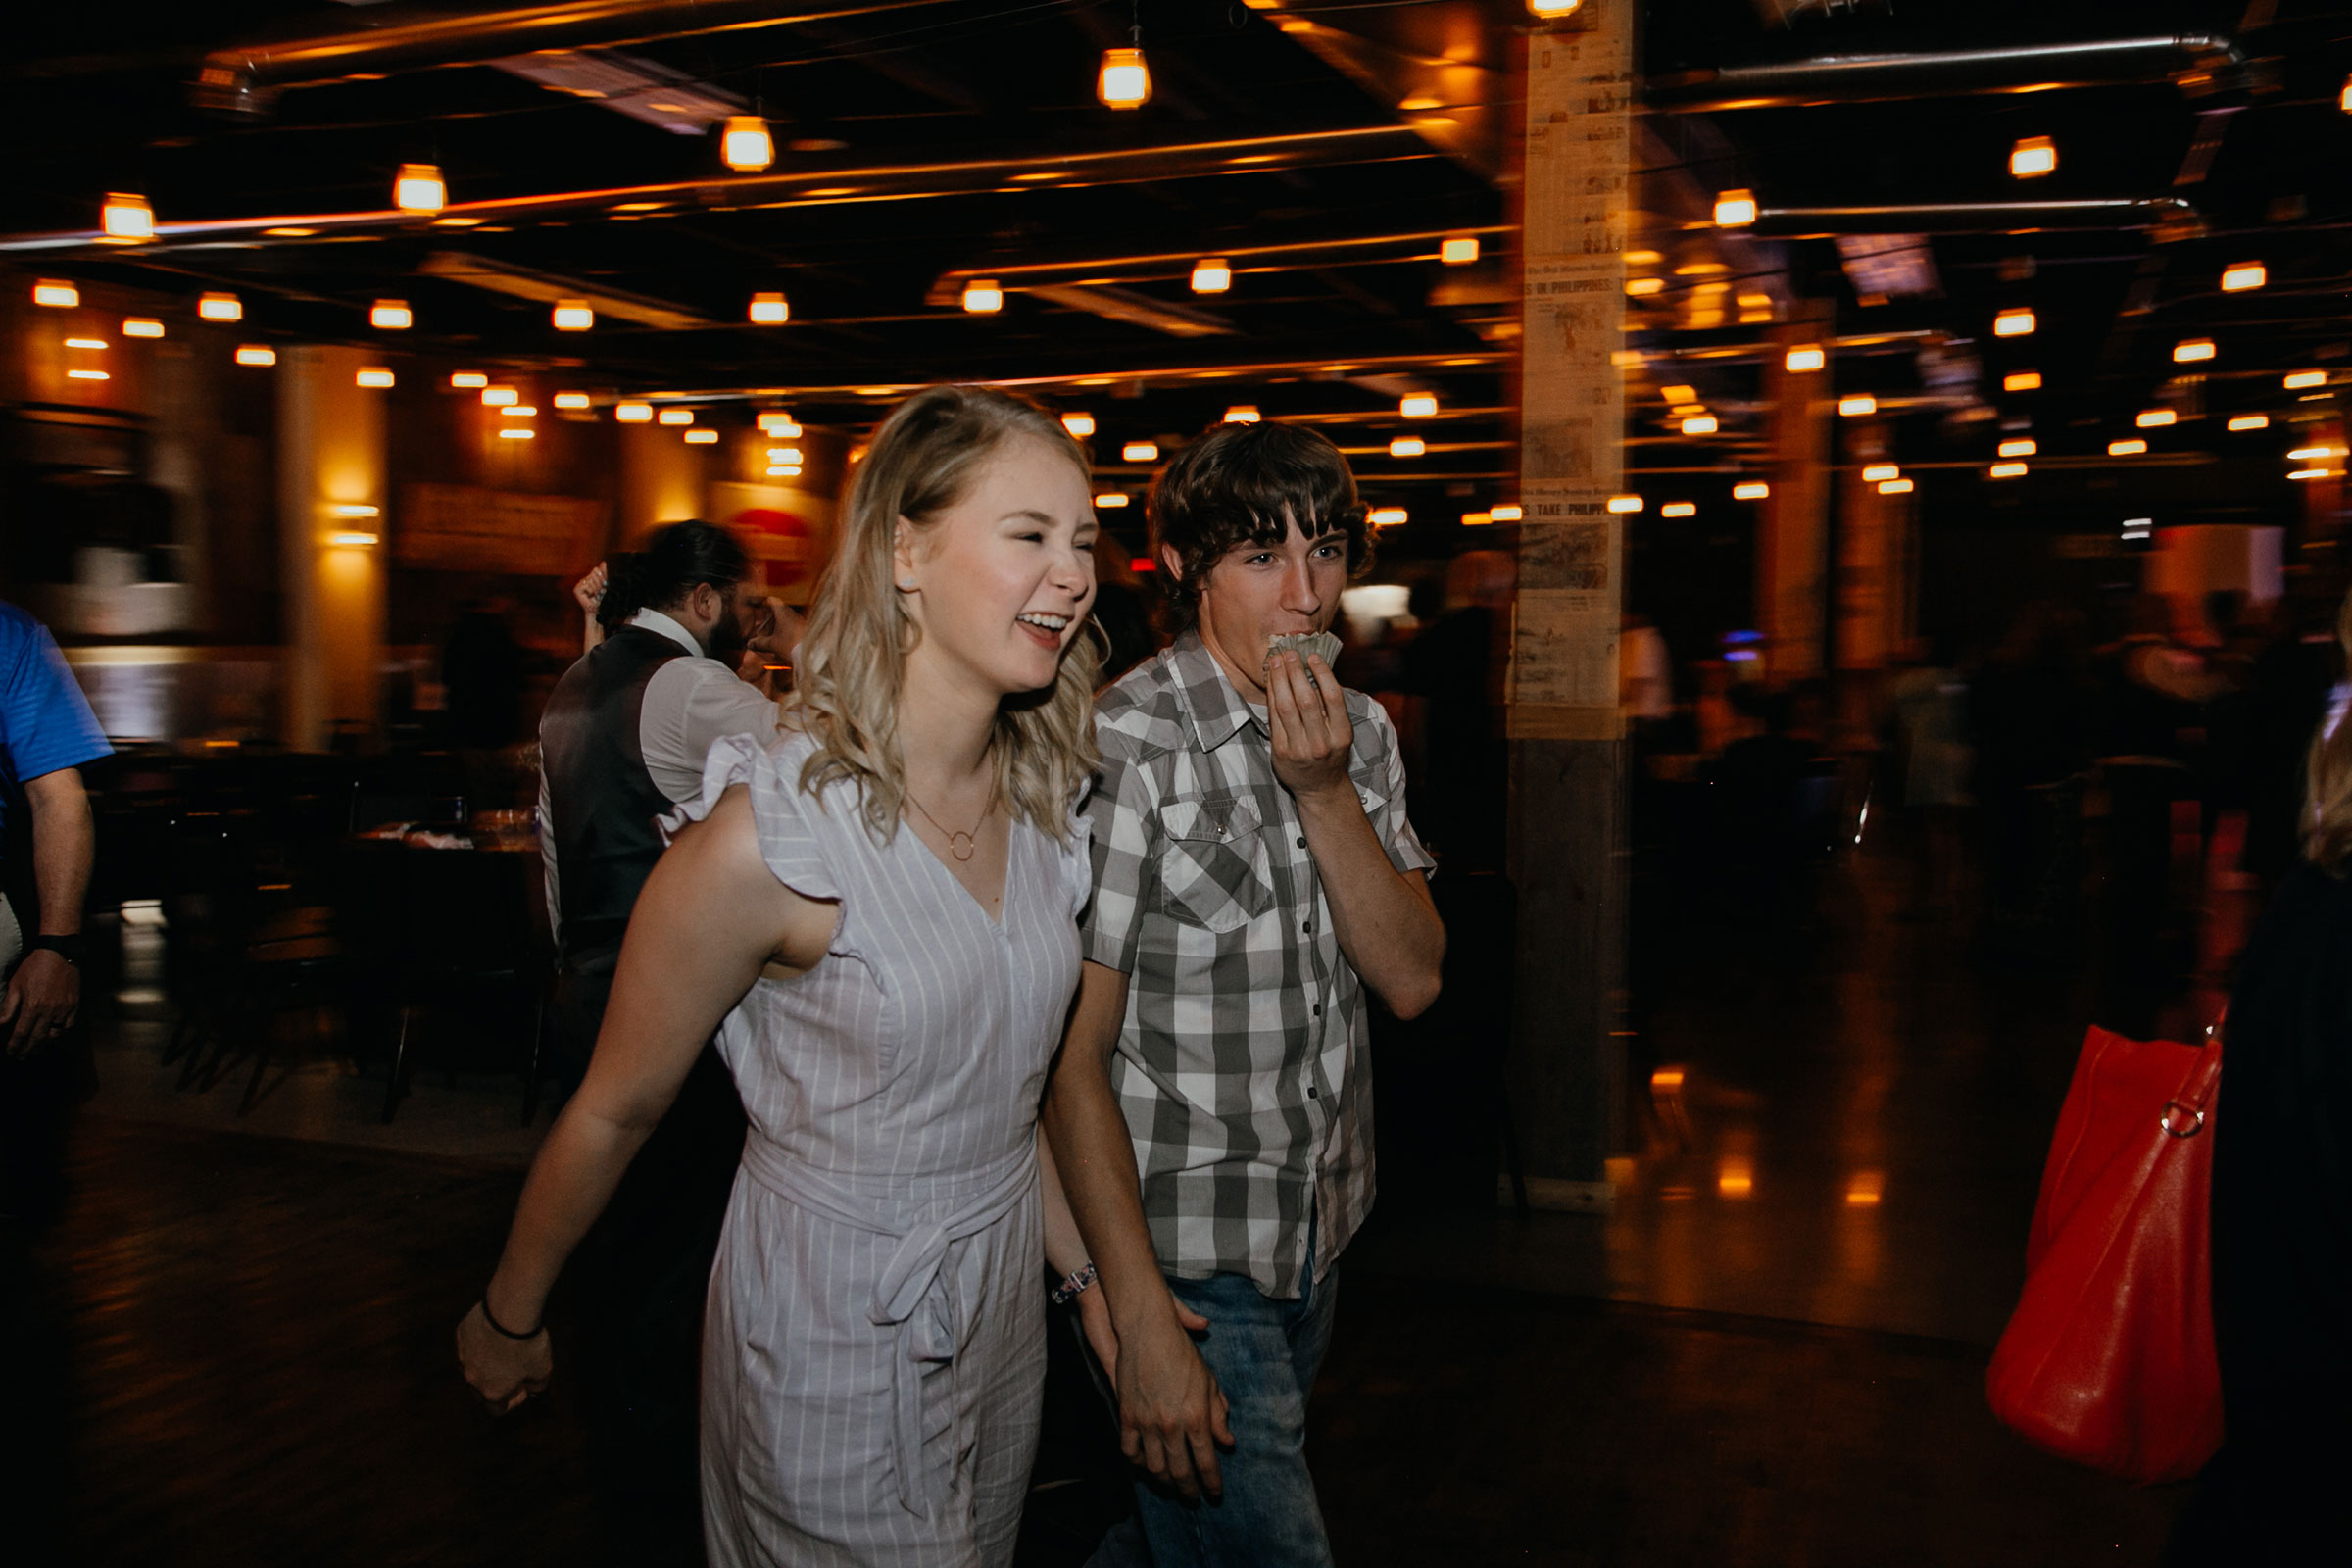 couple-walking-while-eating-cupcake-decades-event-center-building-desmoines-iowa-raelyn-ramey-photography..jpg